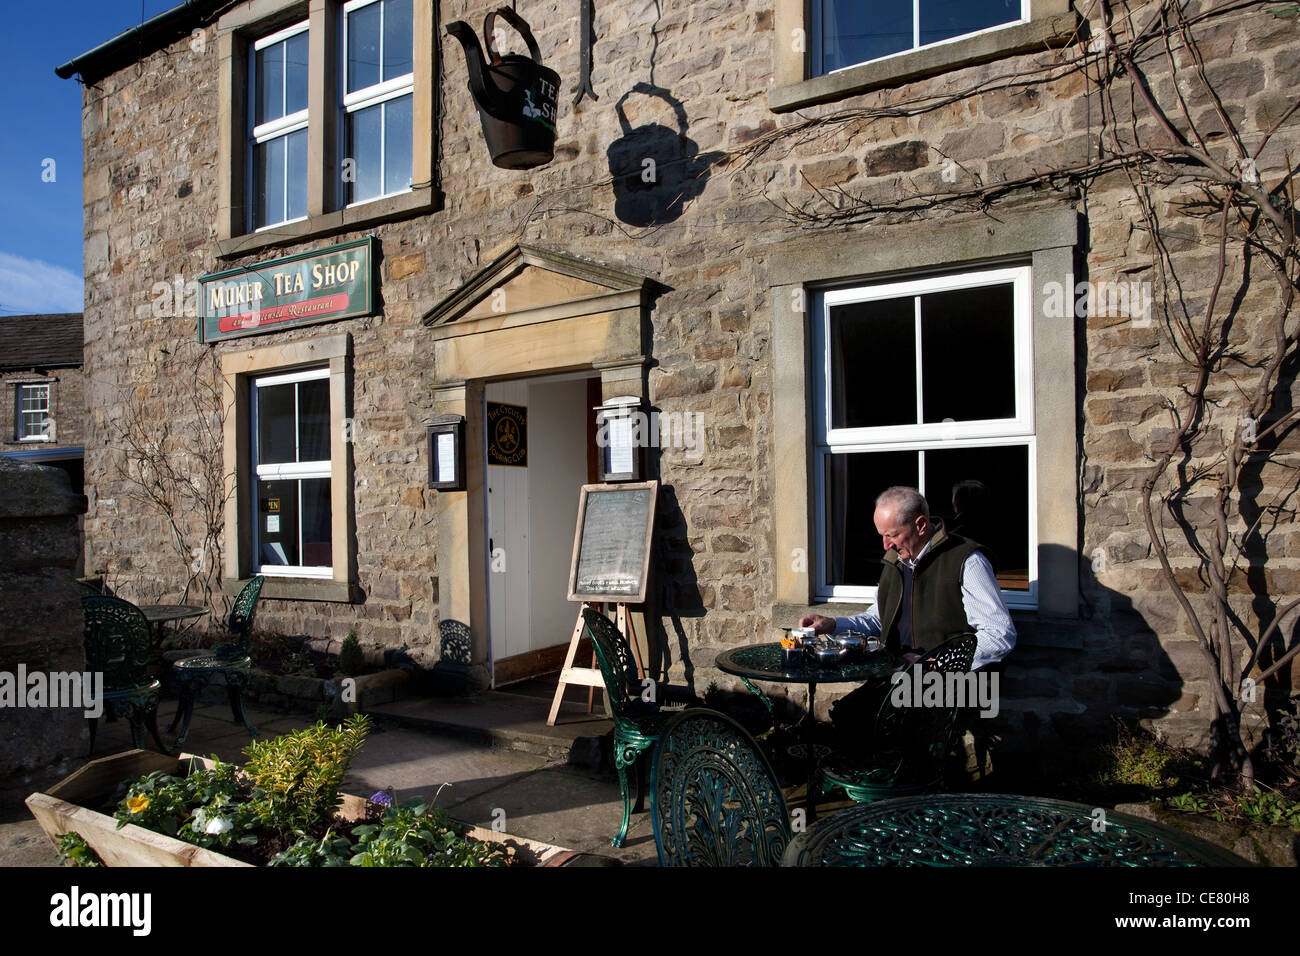 Muker Tea Shop _ Village Catering with customer sat outside in the North Yorkshire Dales, UK - Stock Image